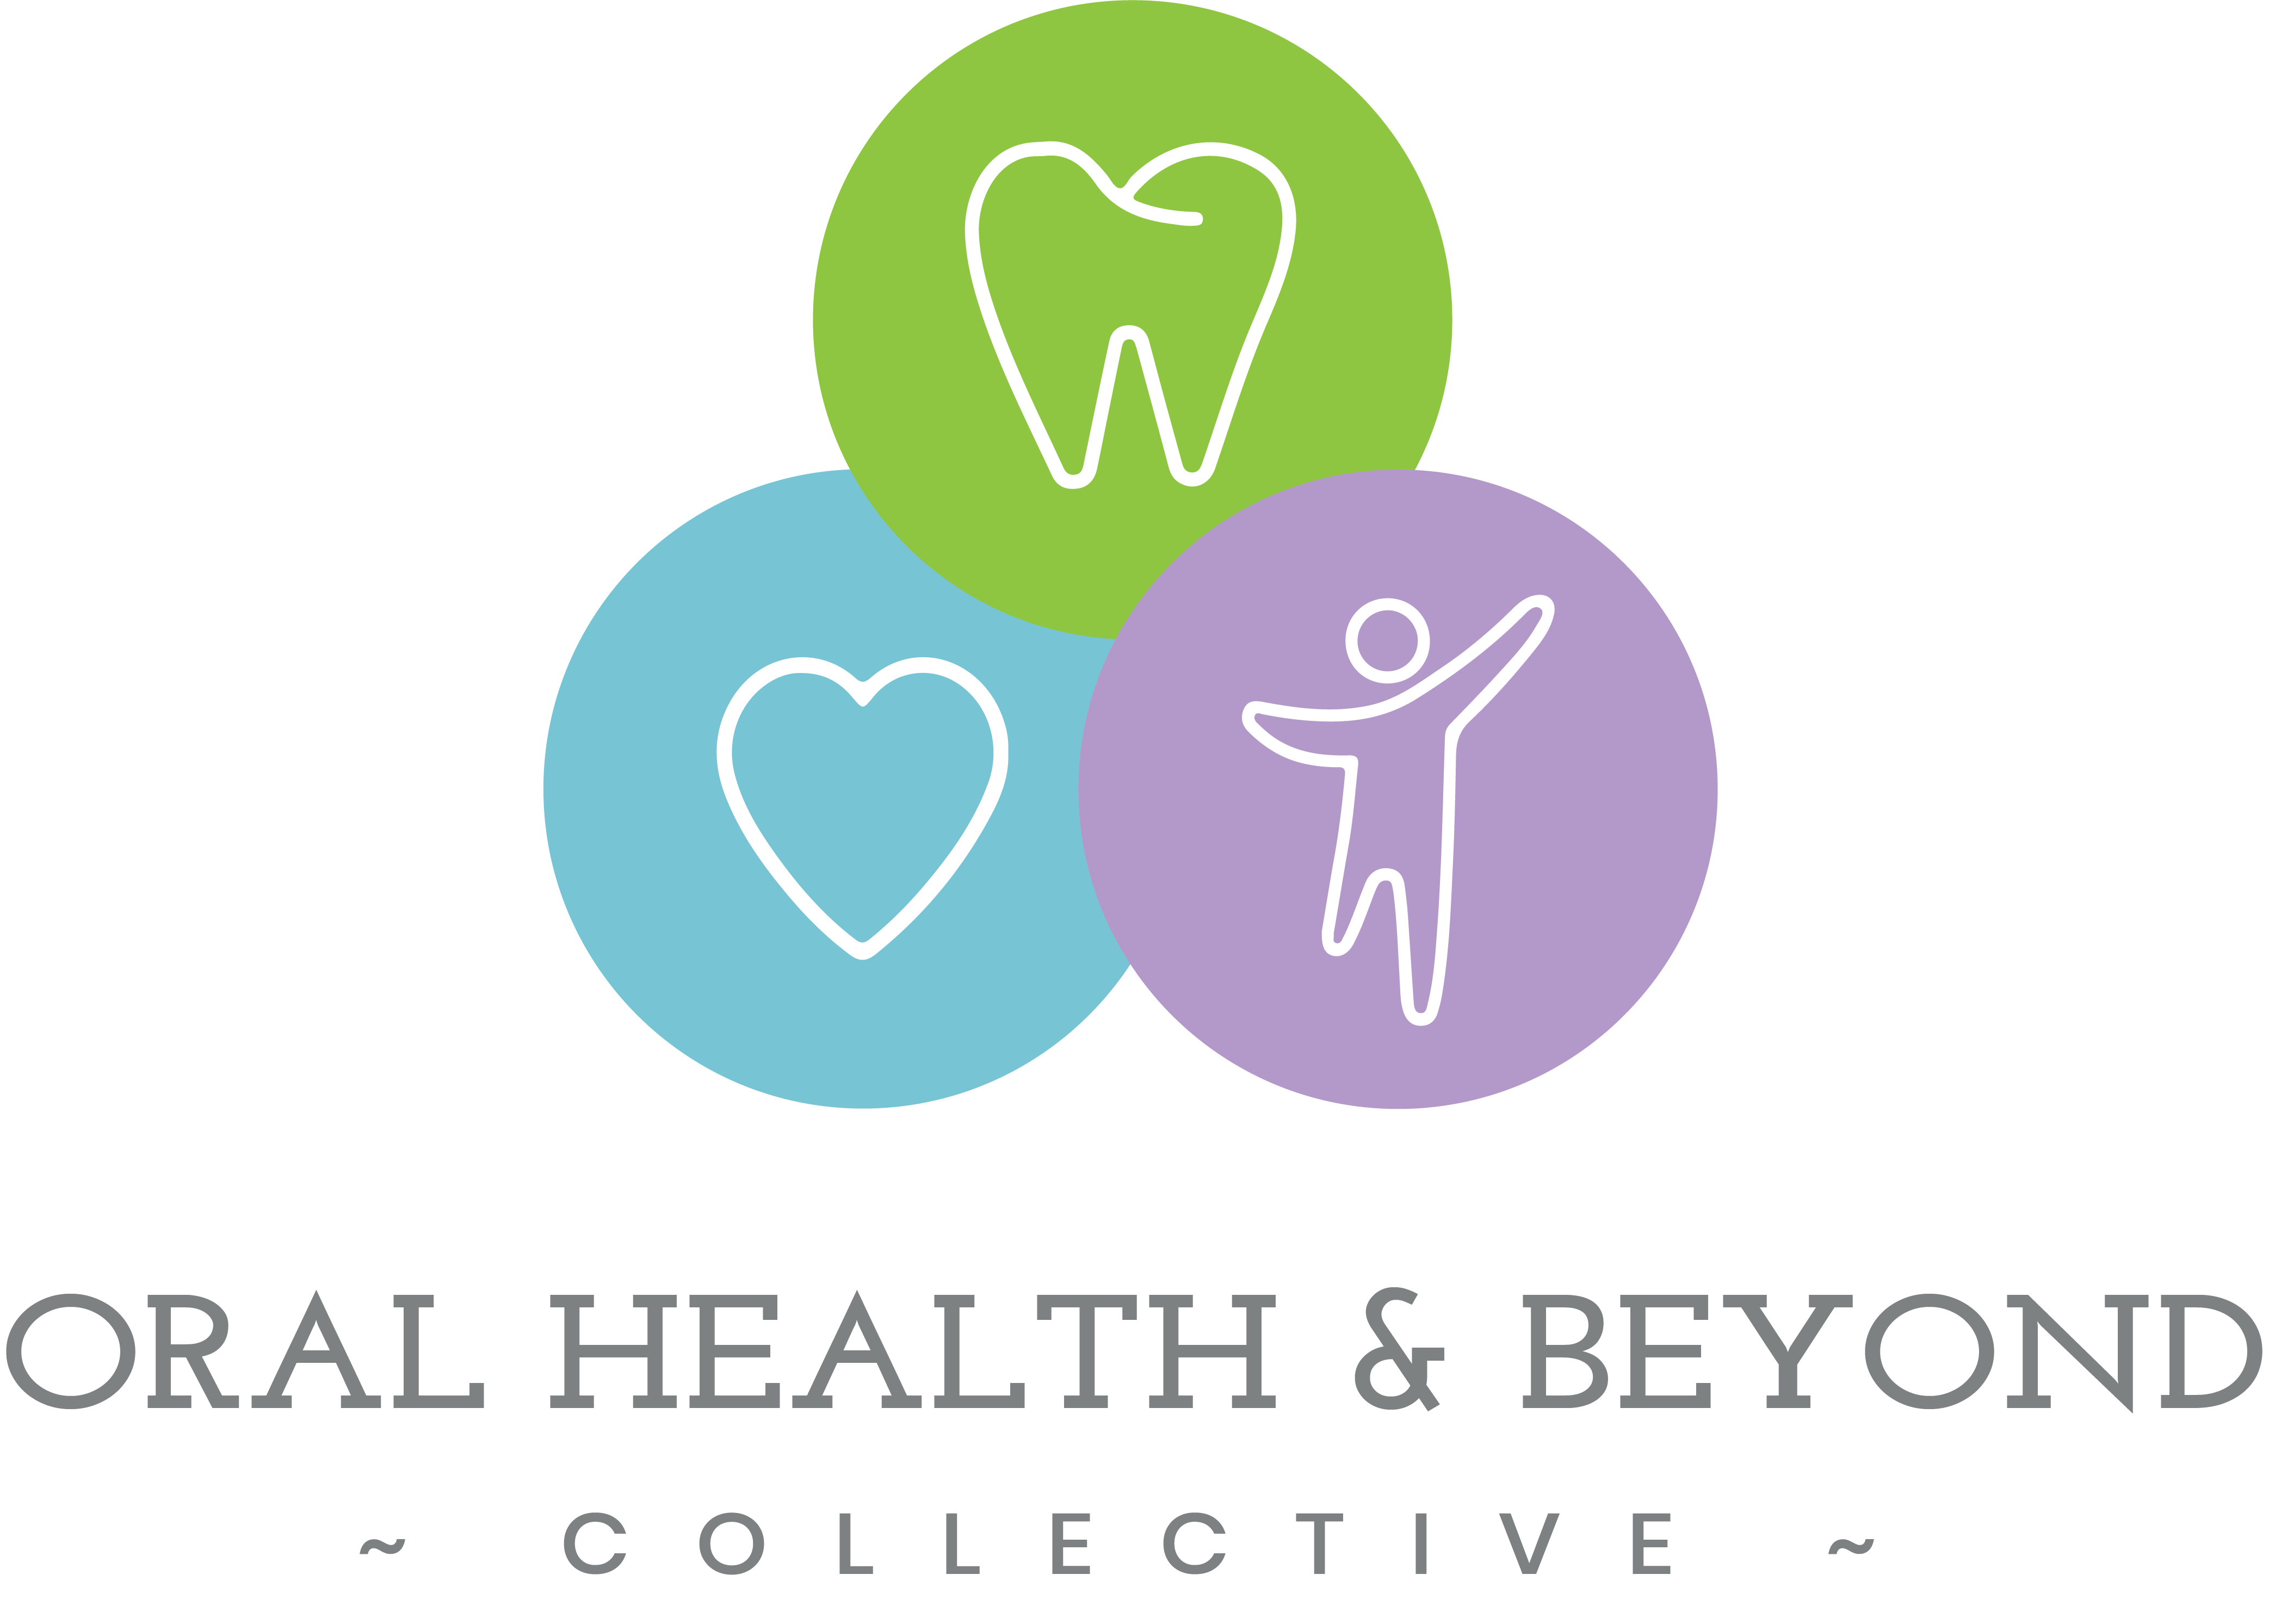 Oral Health & Beyond